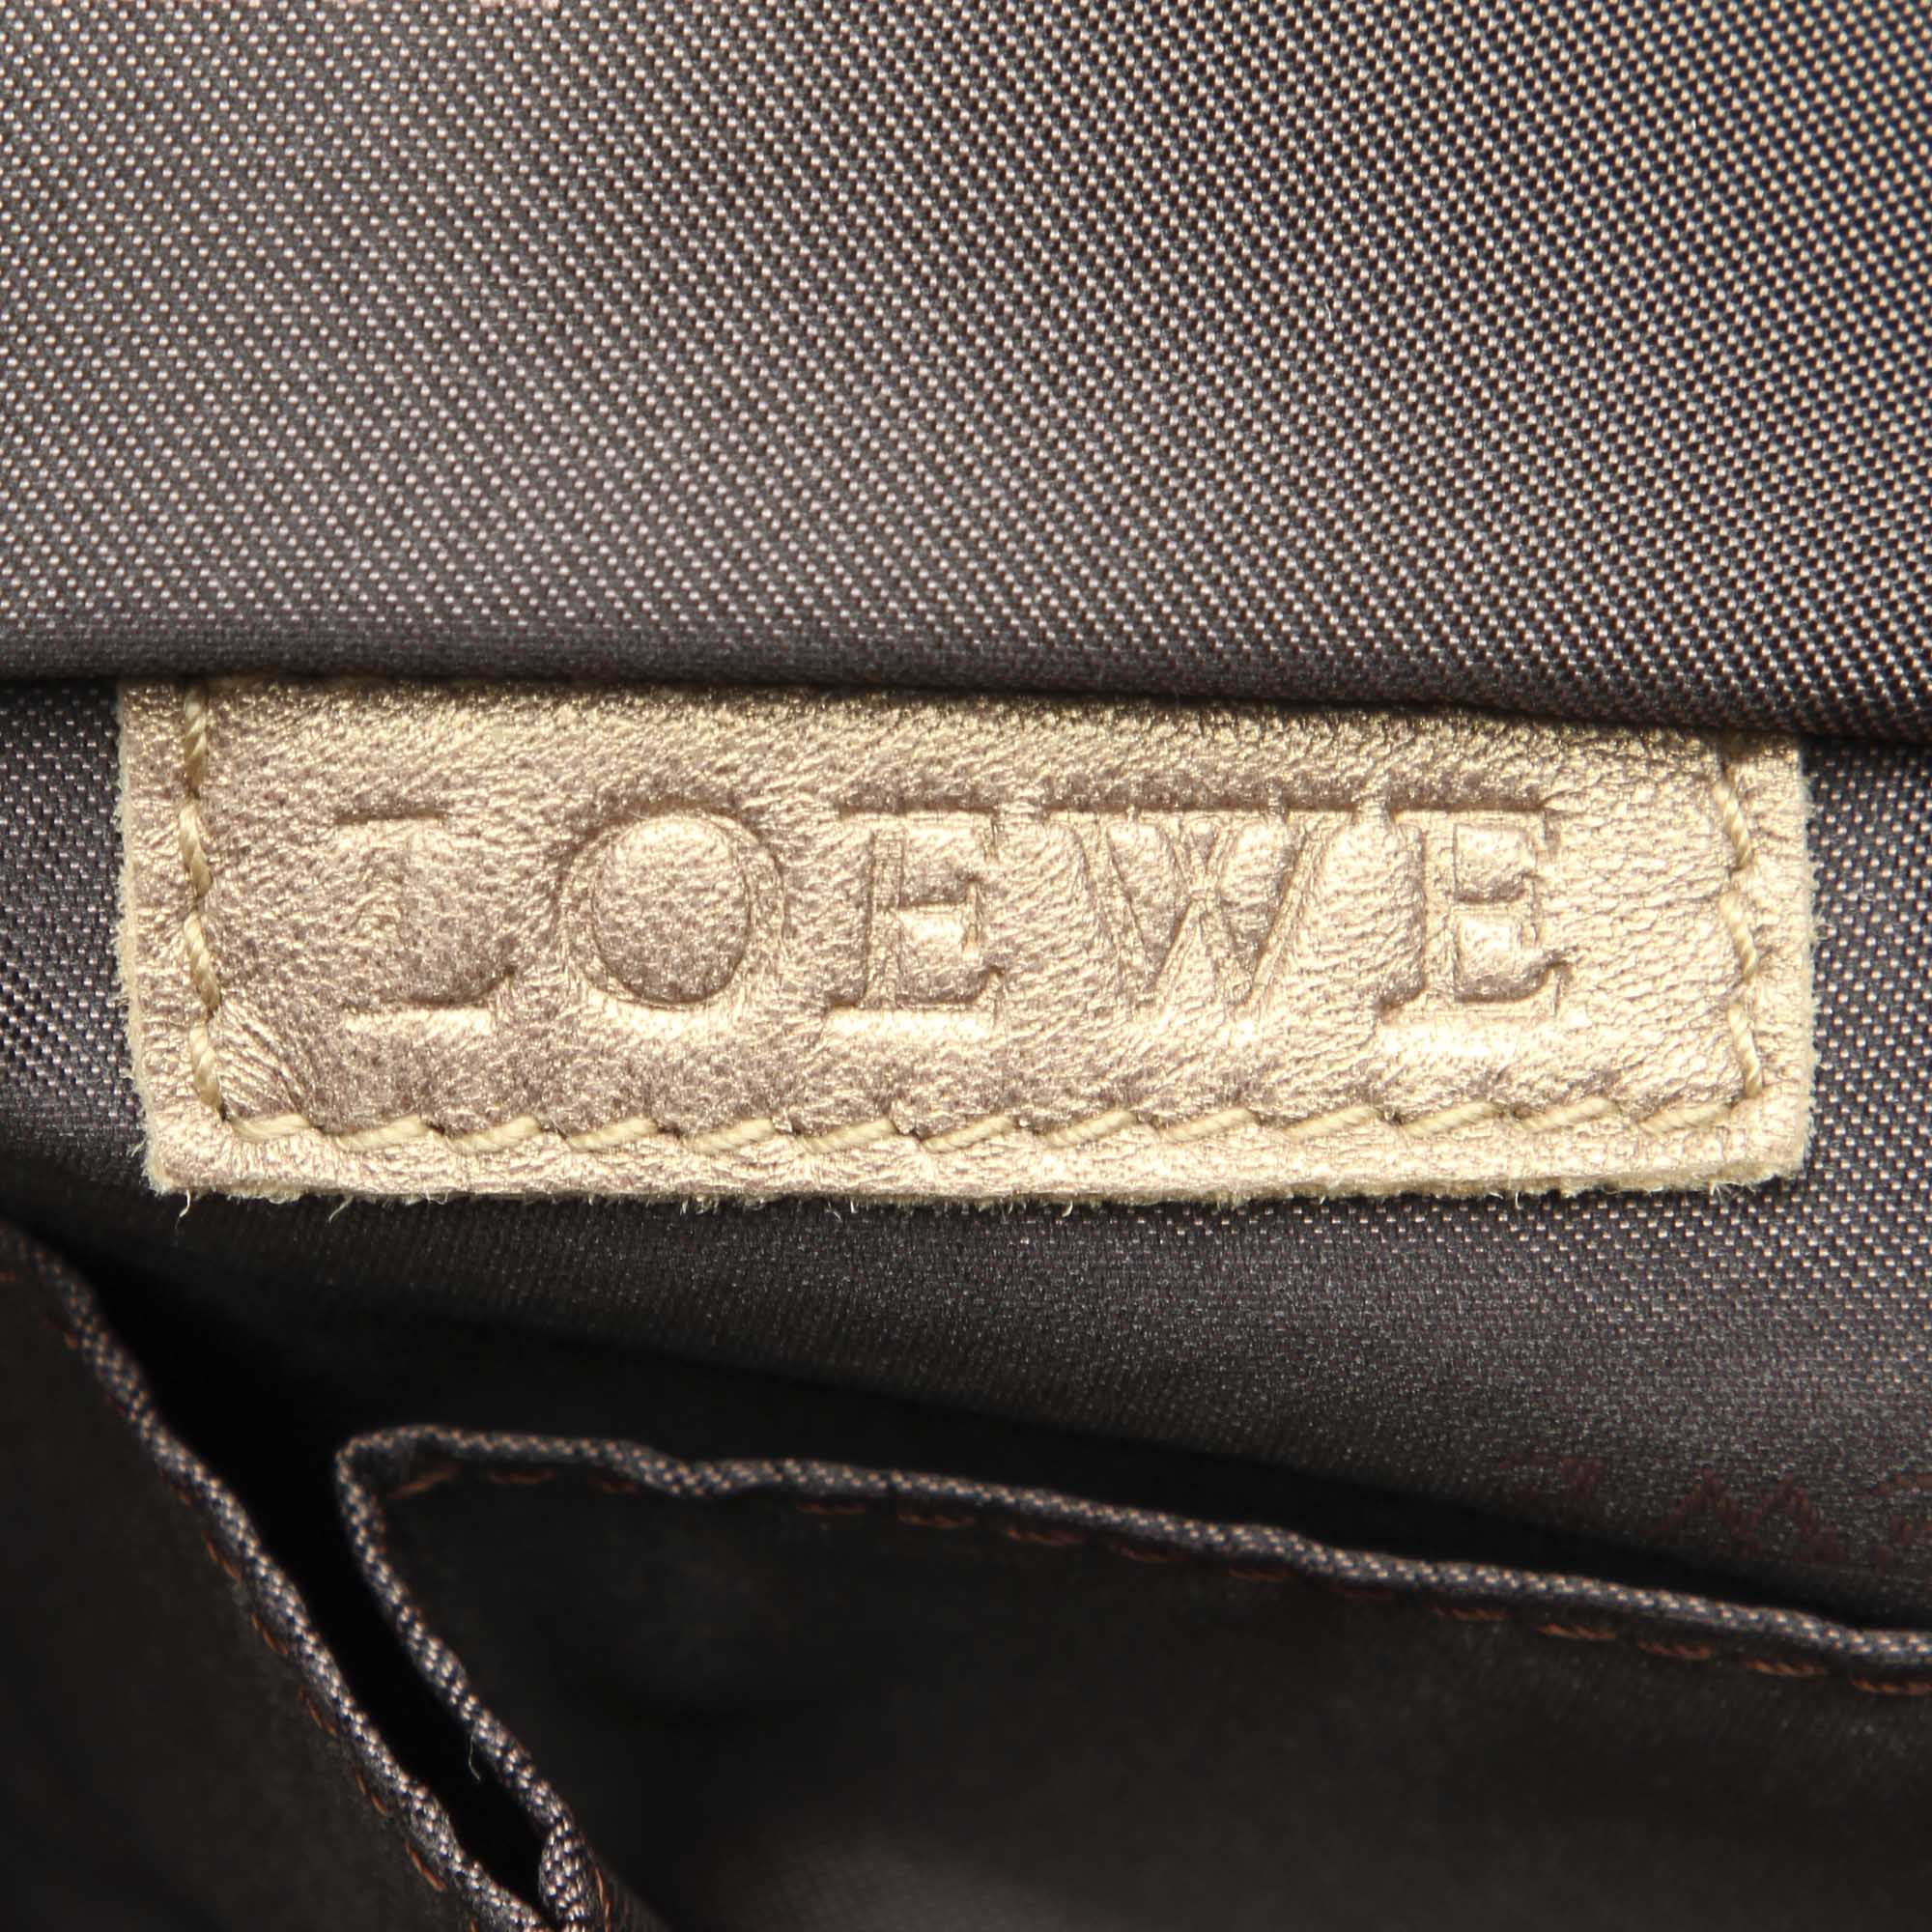 Loewe Brown Brisa Leather Handbag